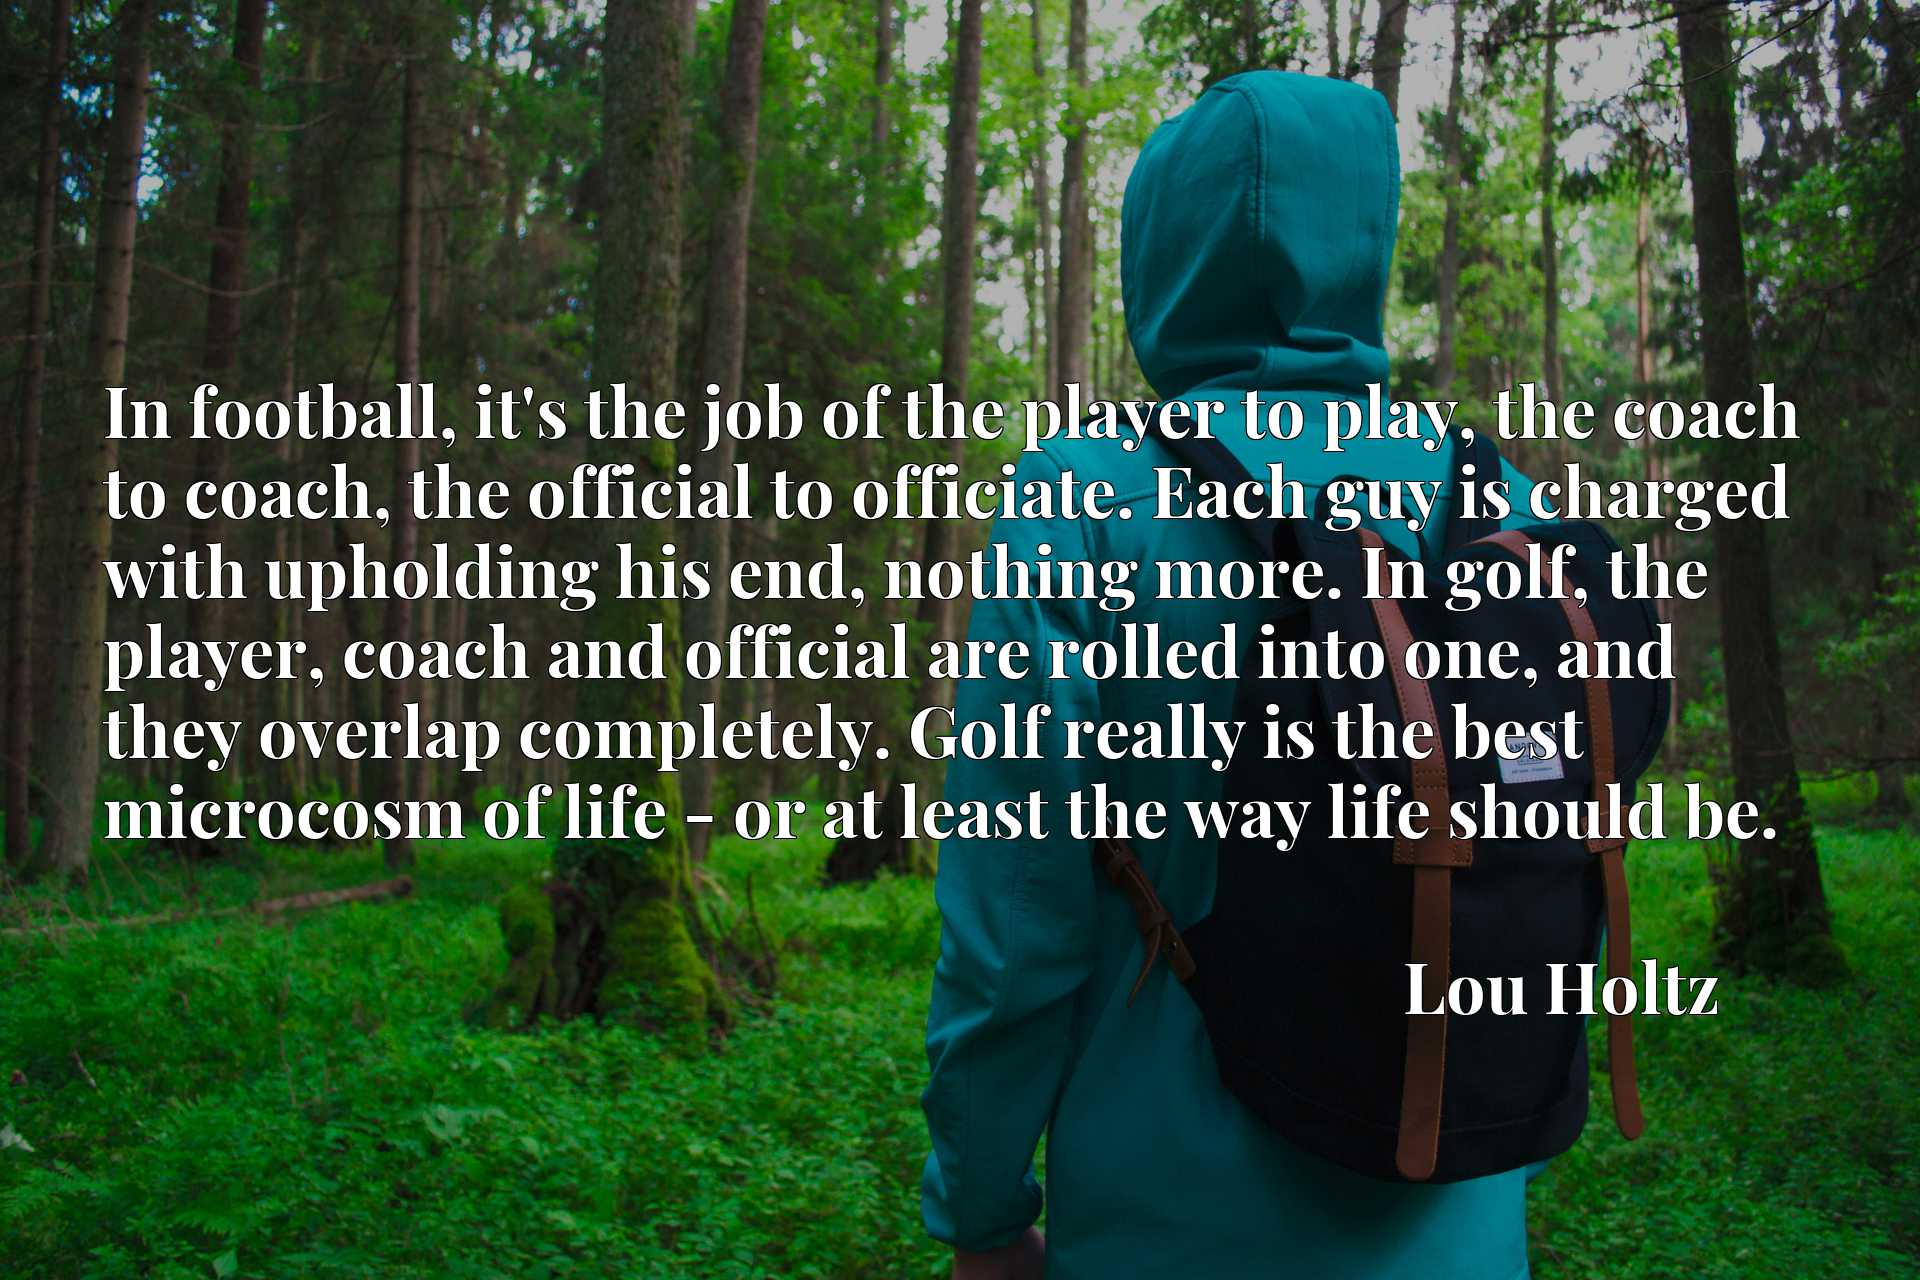 In football, it's the job of the player to play, the coach to coach, the official to officiate. Each guy is charged with upholding his end, nothing more. In golf, the player, coach and official are rolled into one, and they overlap completely. Golf really is the best microcosm of life - or at least the way life should be.